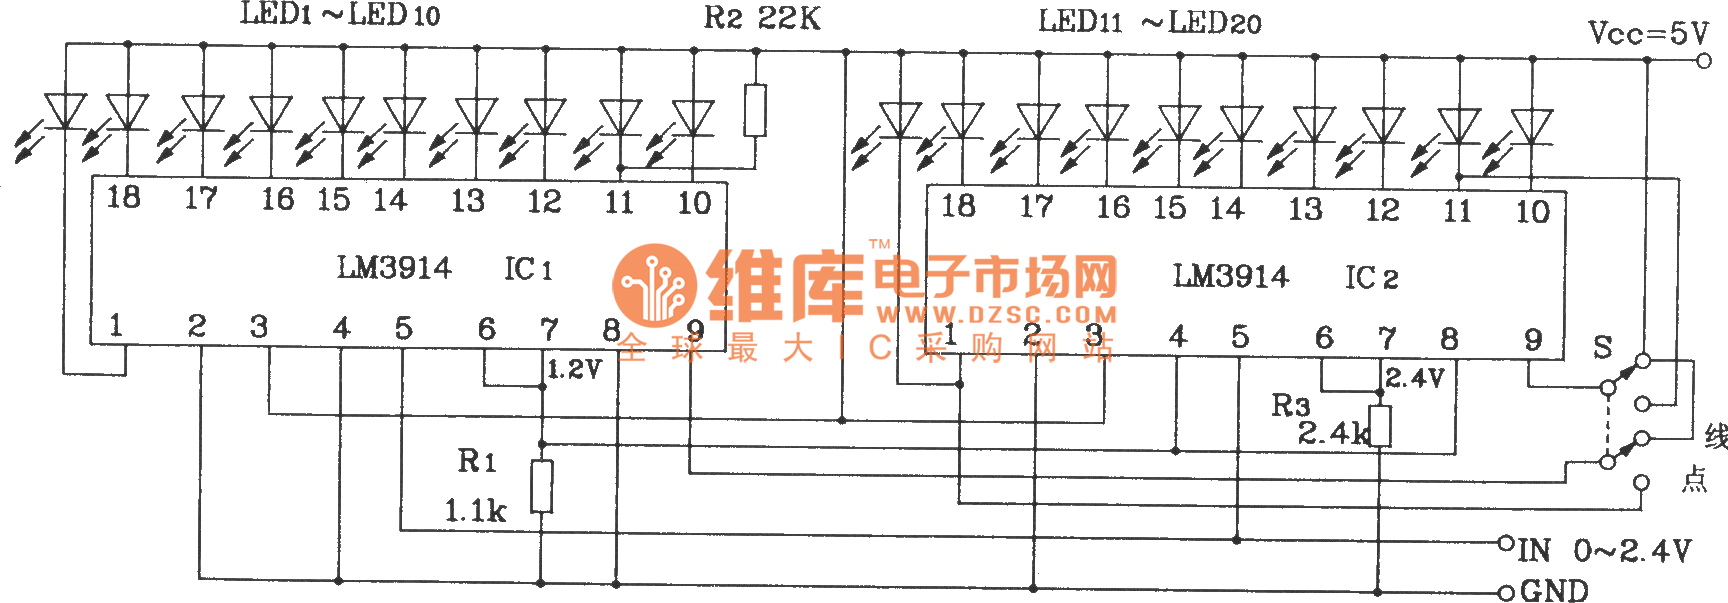 20 Bit Led Line Conversion Circuit With Two Lm3914 Comparatorledflasher Ledandlightcircuit Diagram